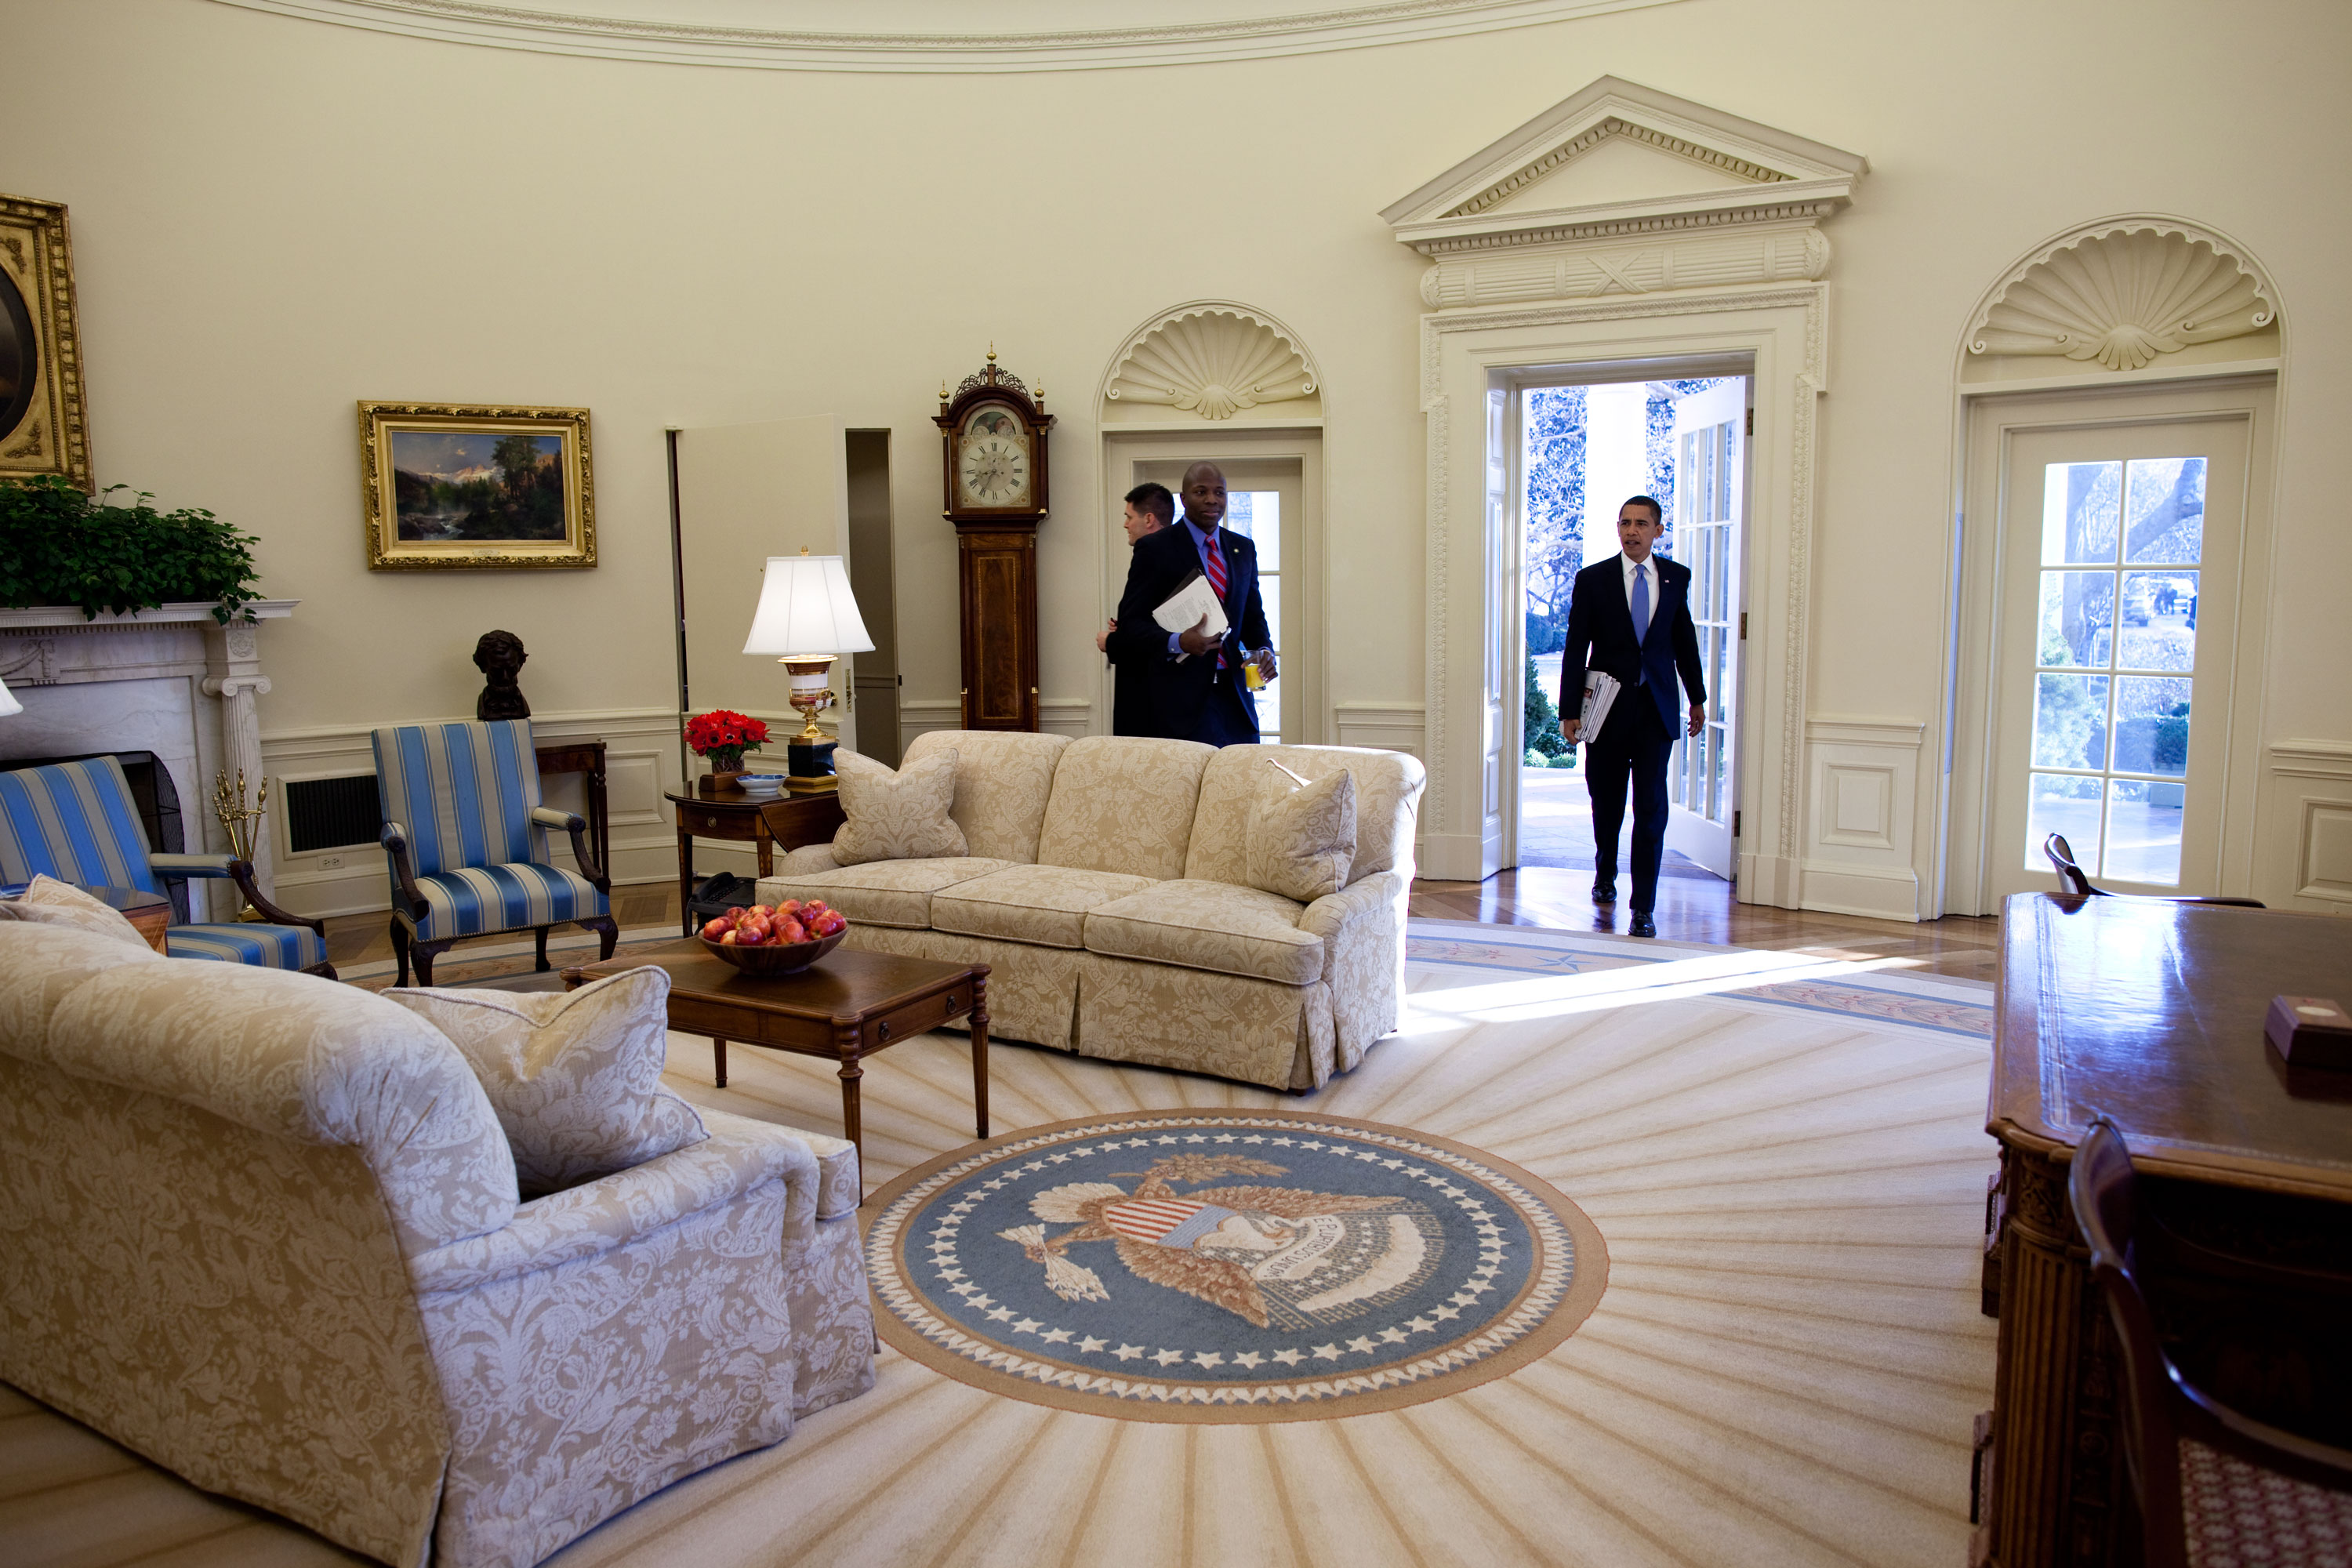 oval office images. fileobama enters the oval officejpg office images